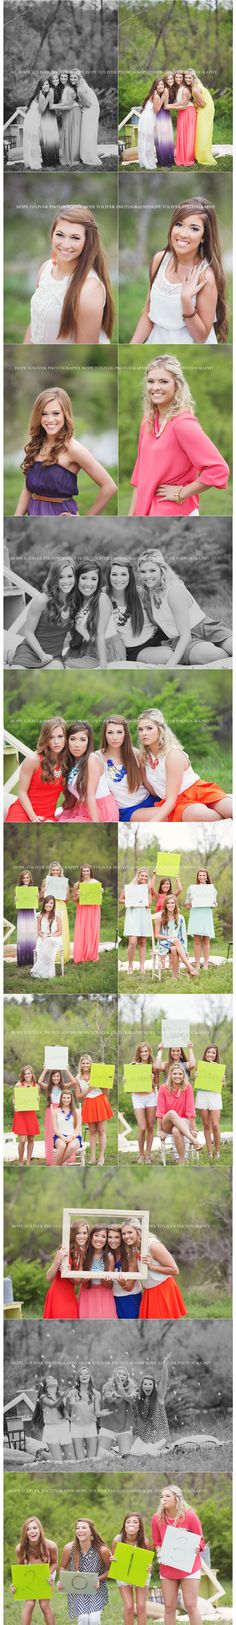 Hope Toliver Photography, Tulsa, Ok Senior Photographer bestfriends sessions